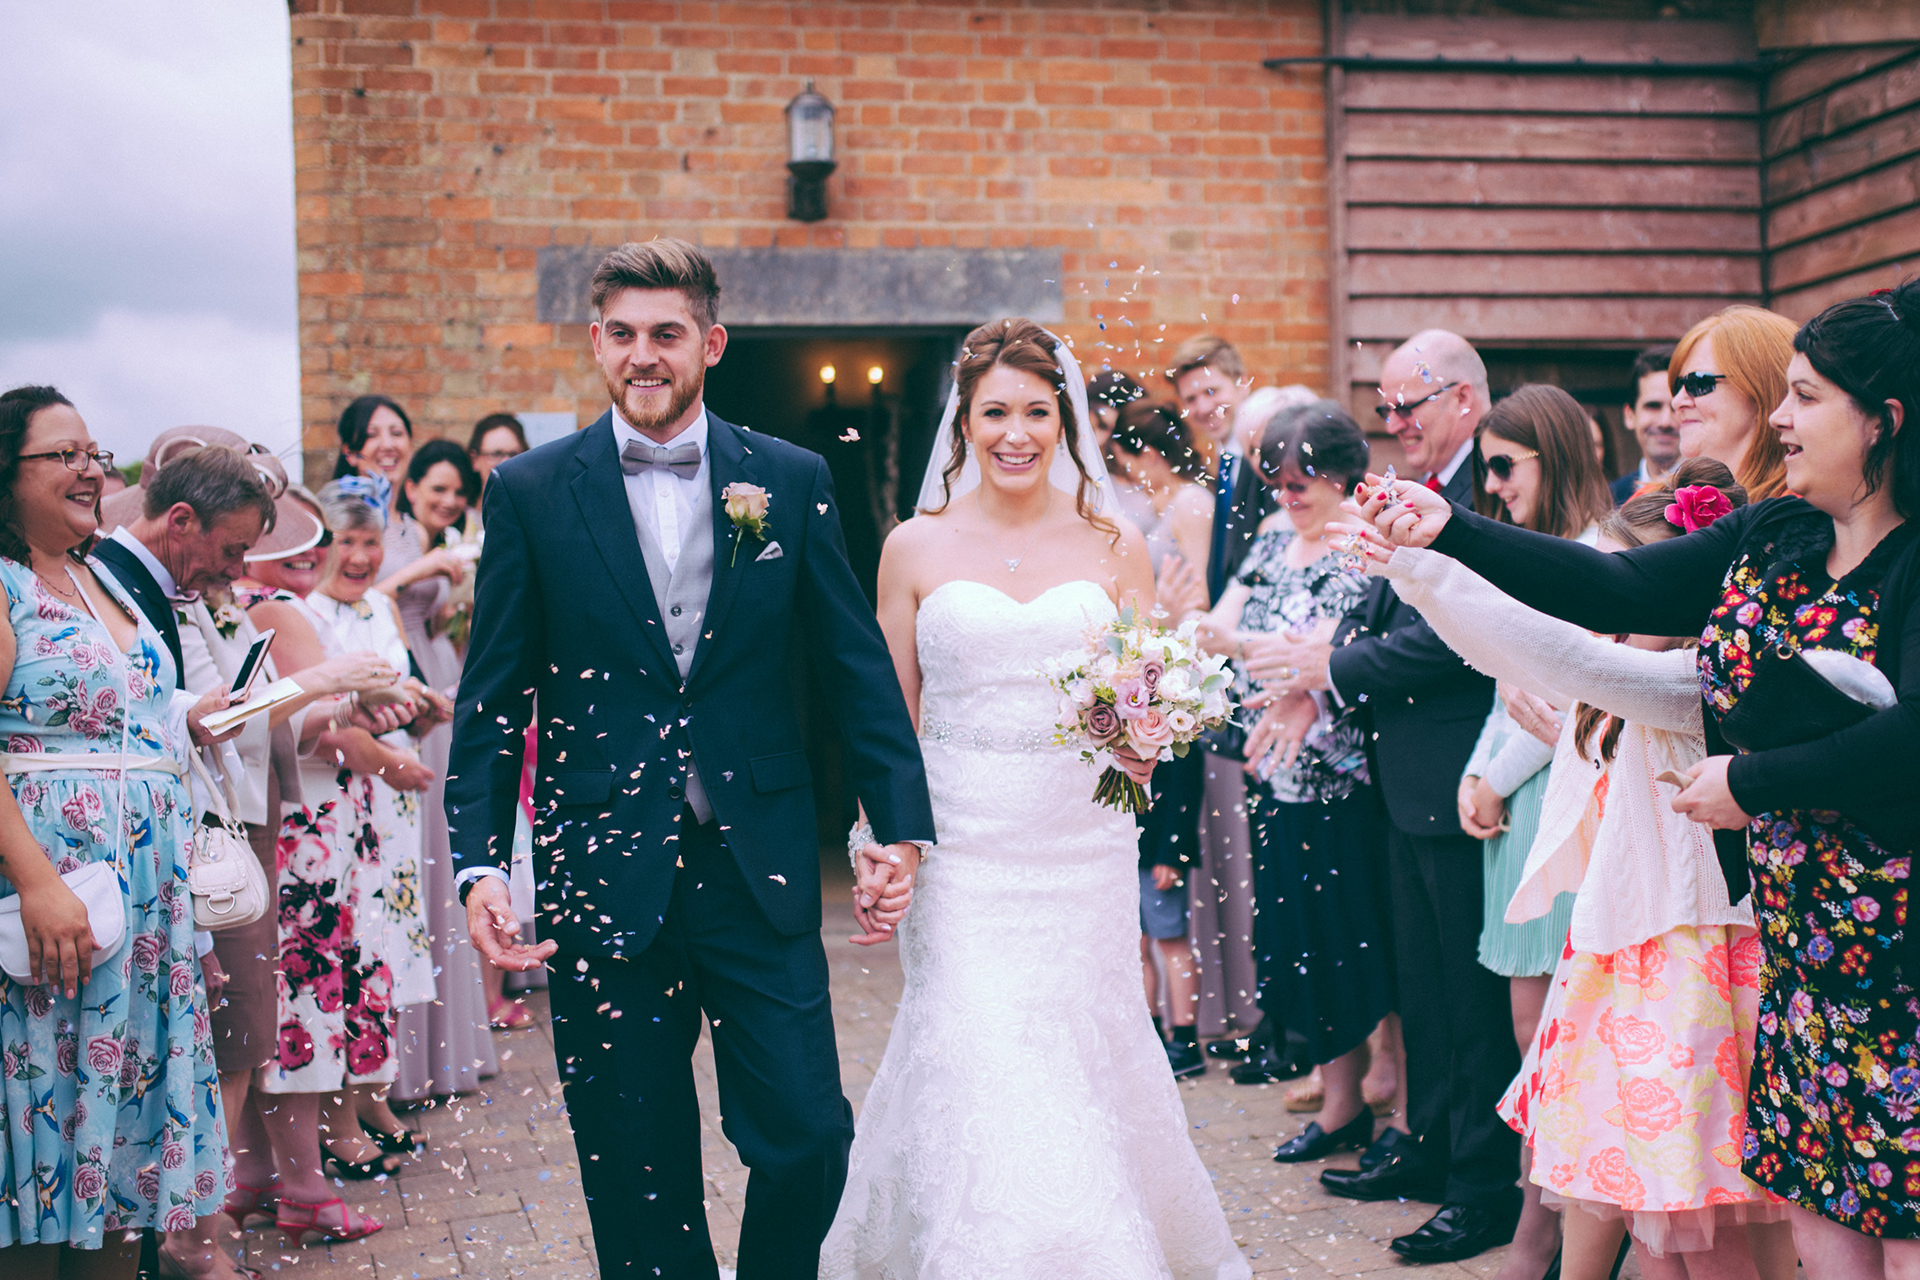 Newlyweds are showered with confetti after their wedding ceremony in the Rickety Barn at Bassmead Manor Barns